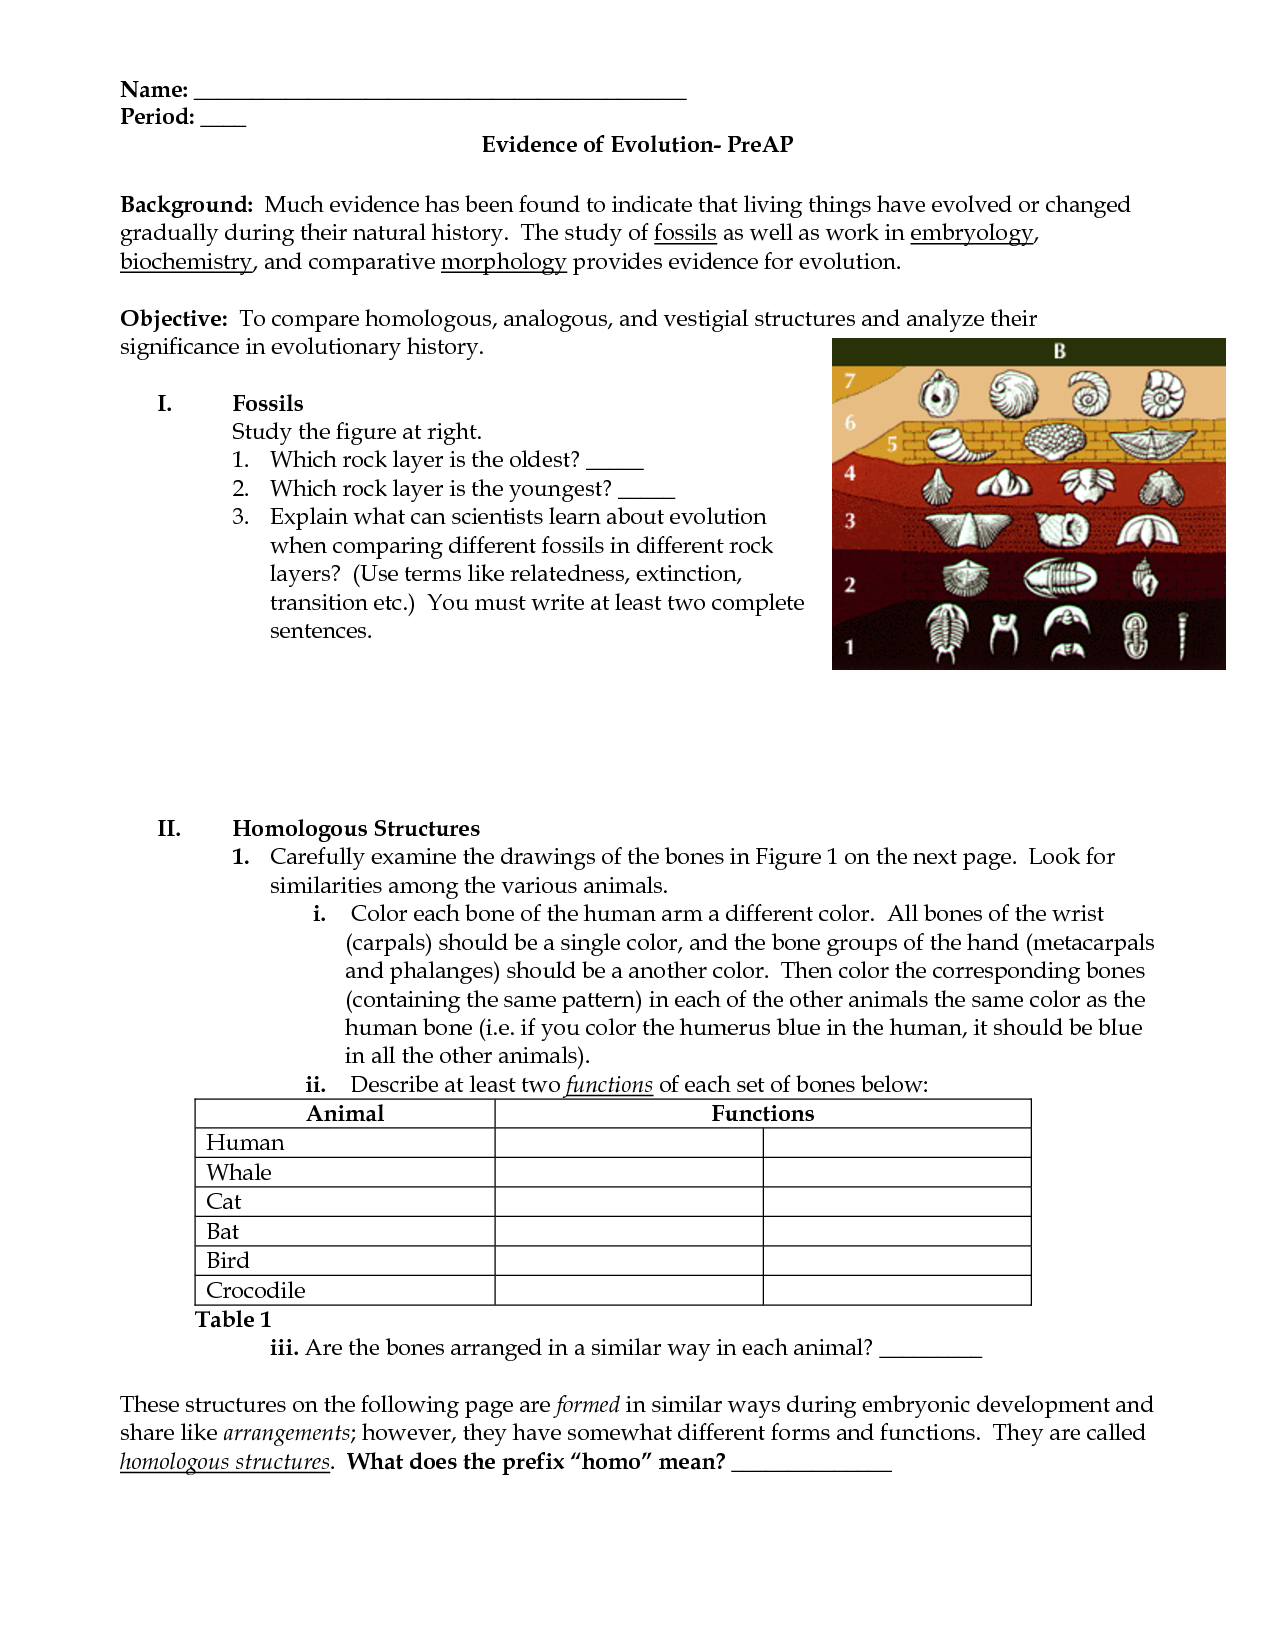 Evidence For Evolution Worksheets